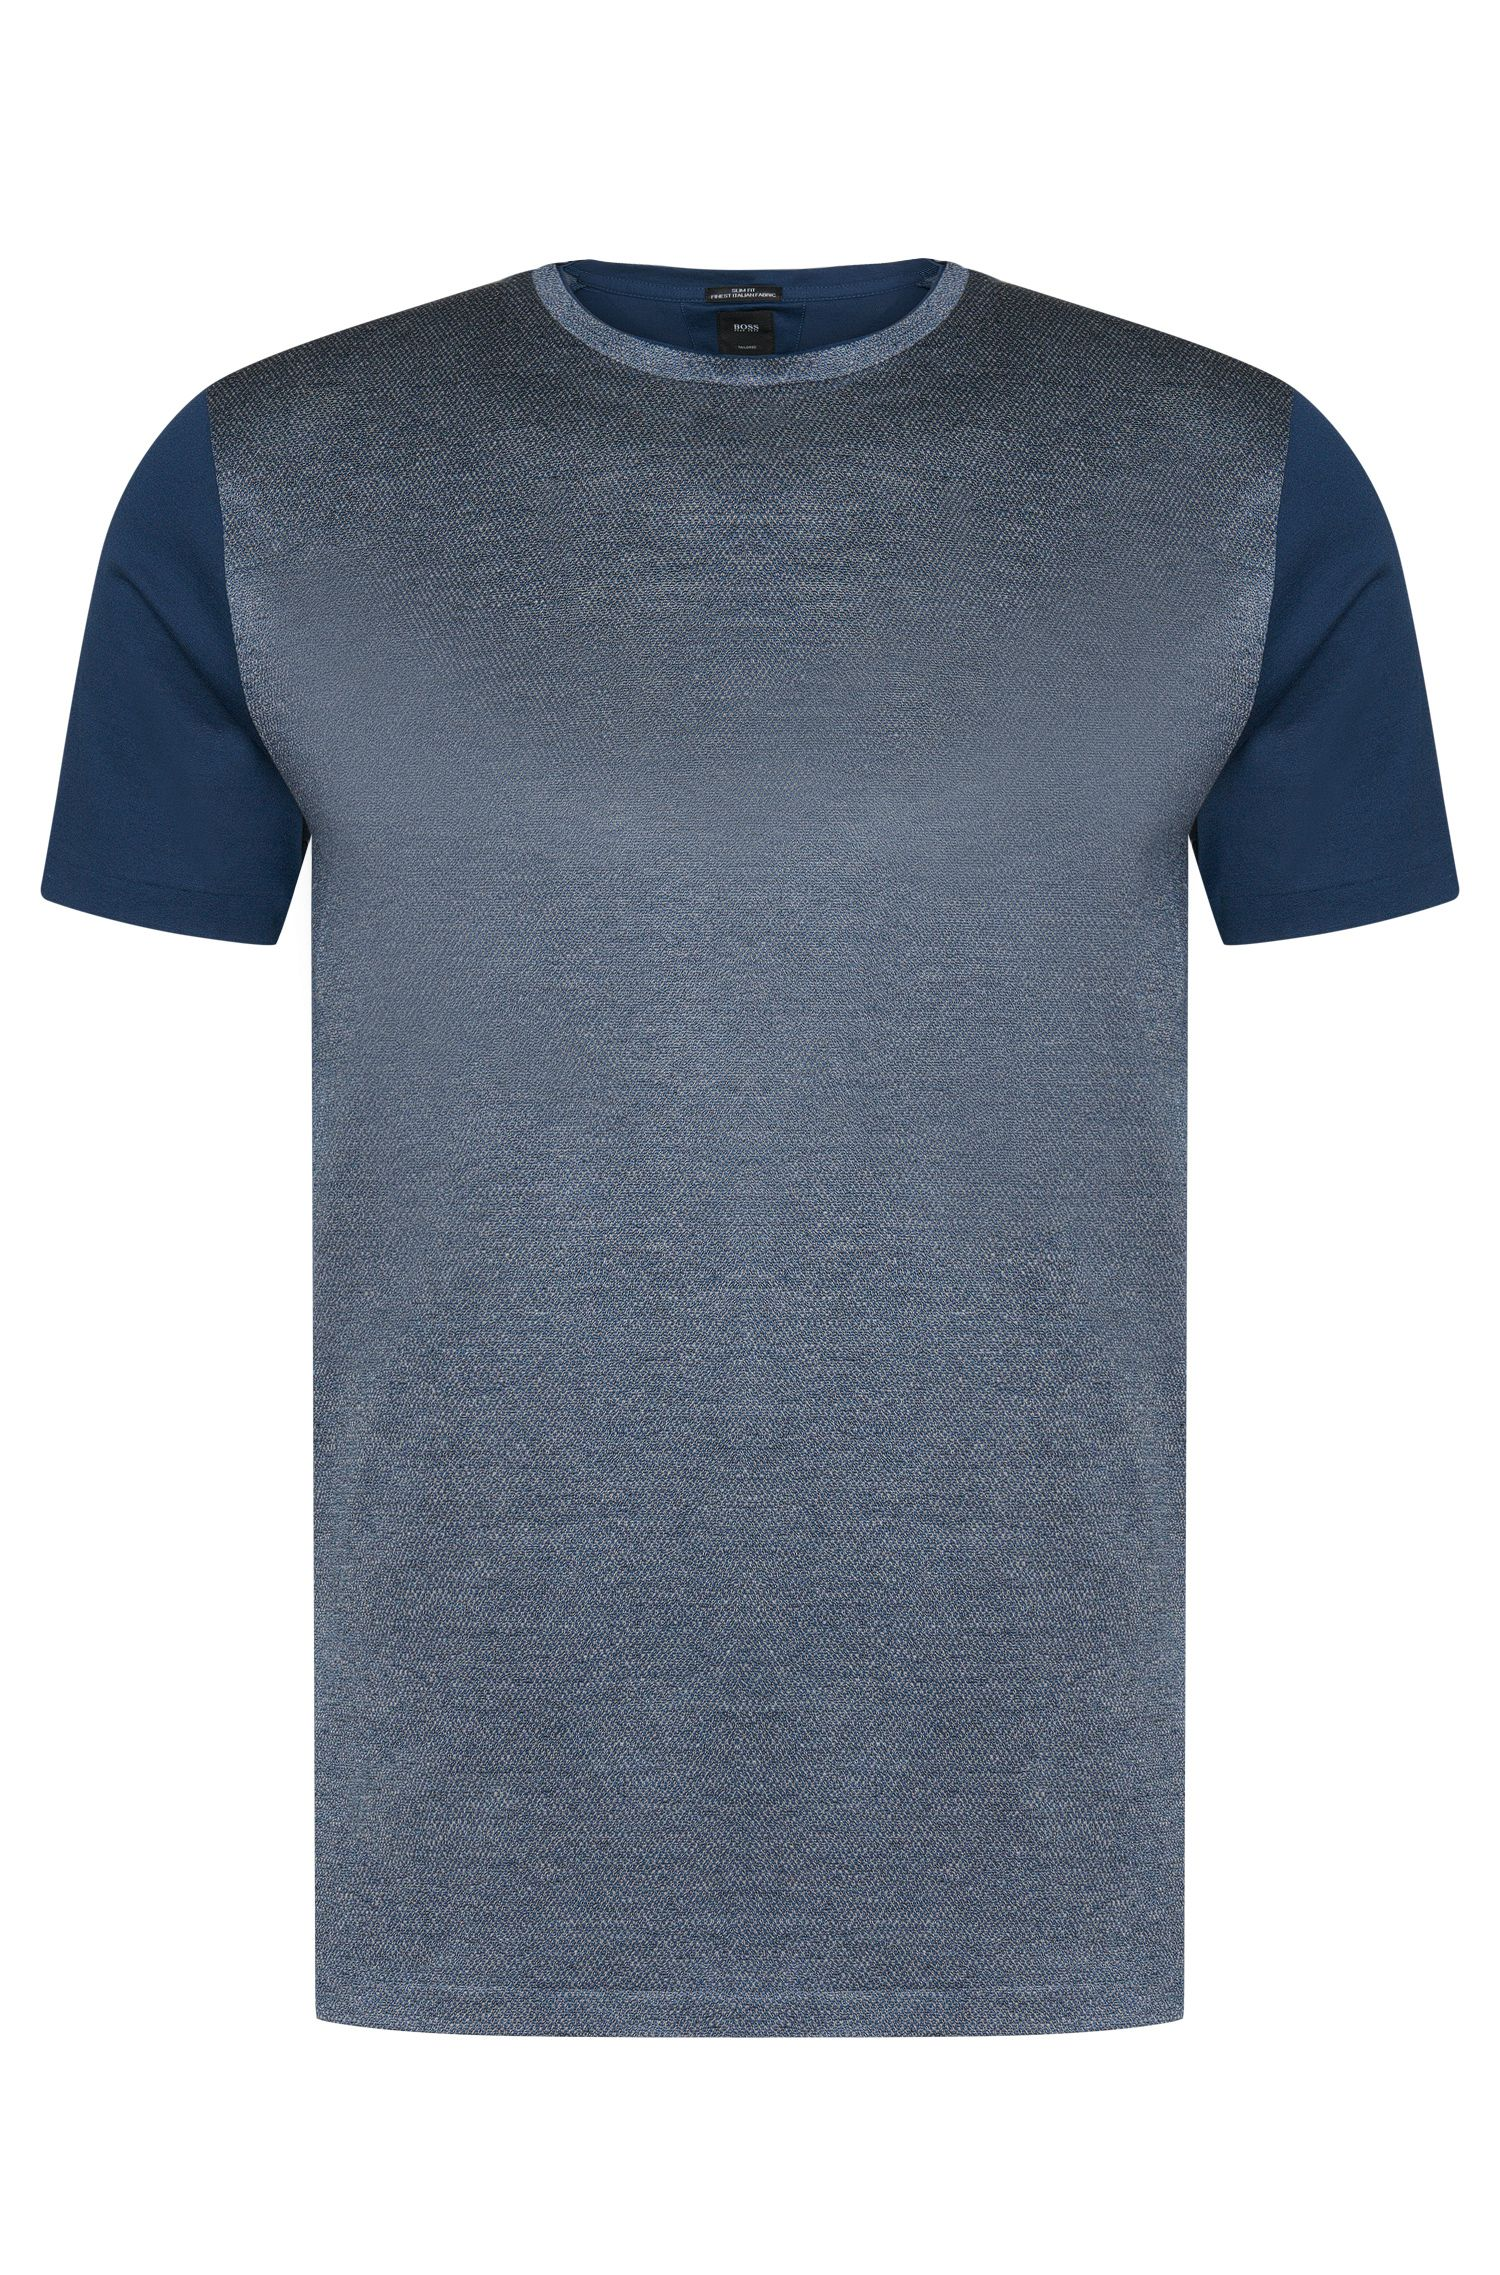 T-shirt Tailored slim fit in cotone con parte anteriore a disegni: 'T-Tribel 20'